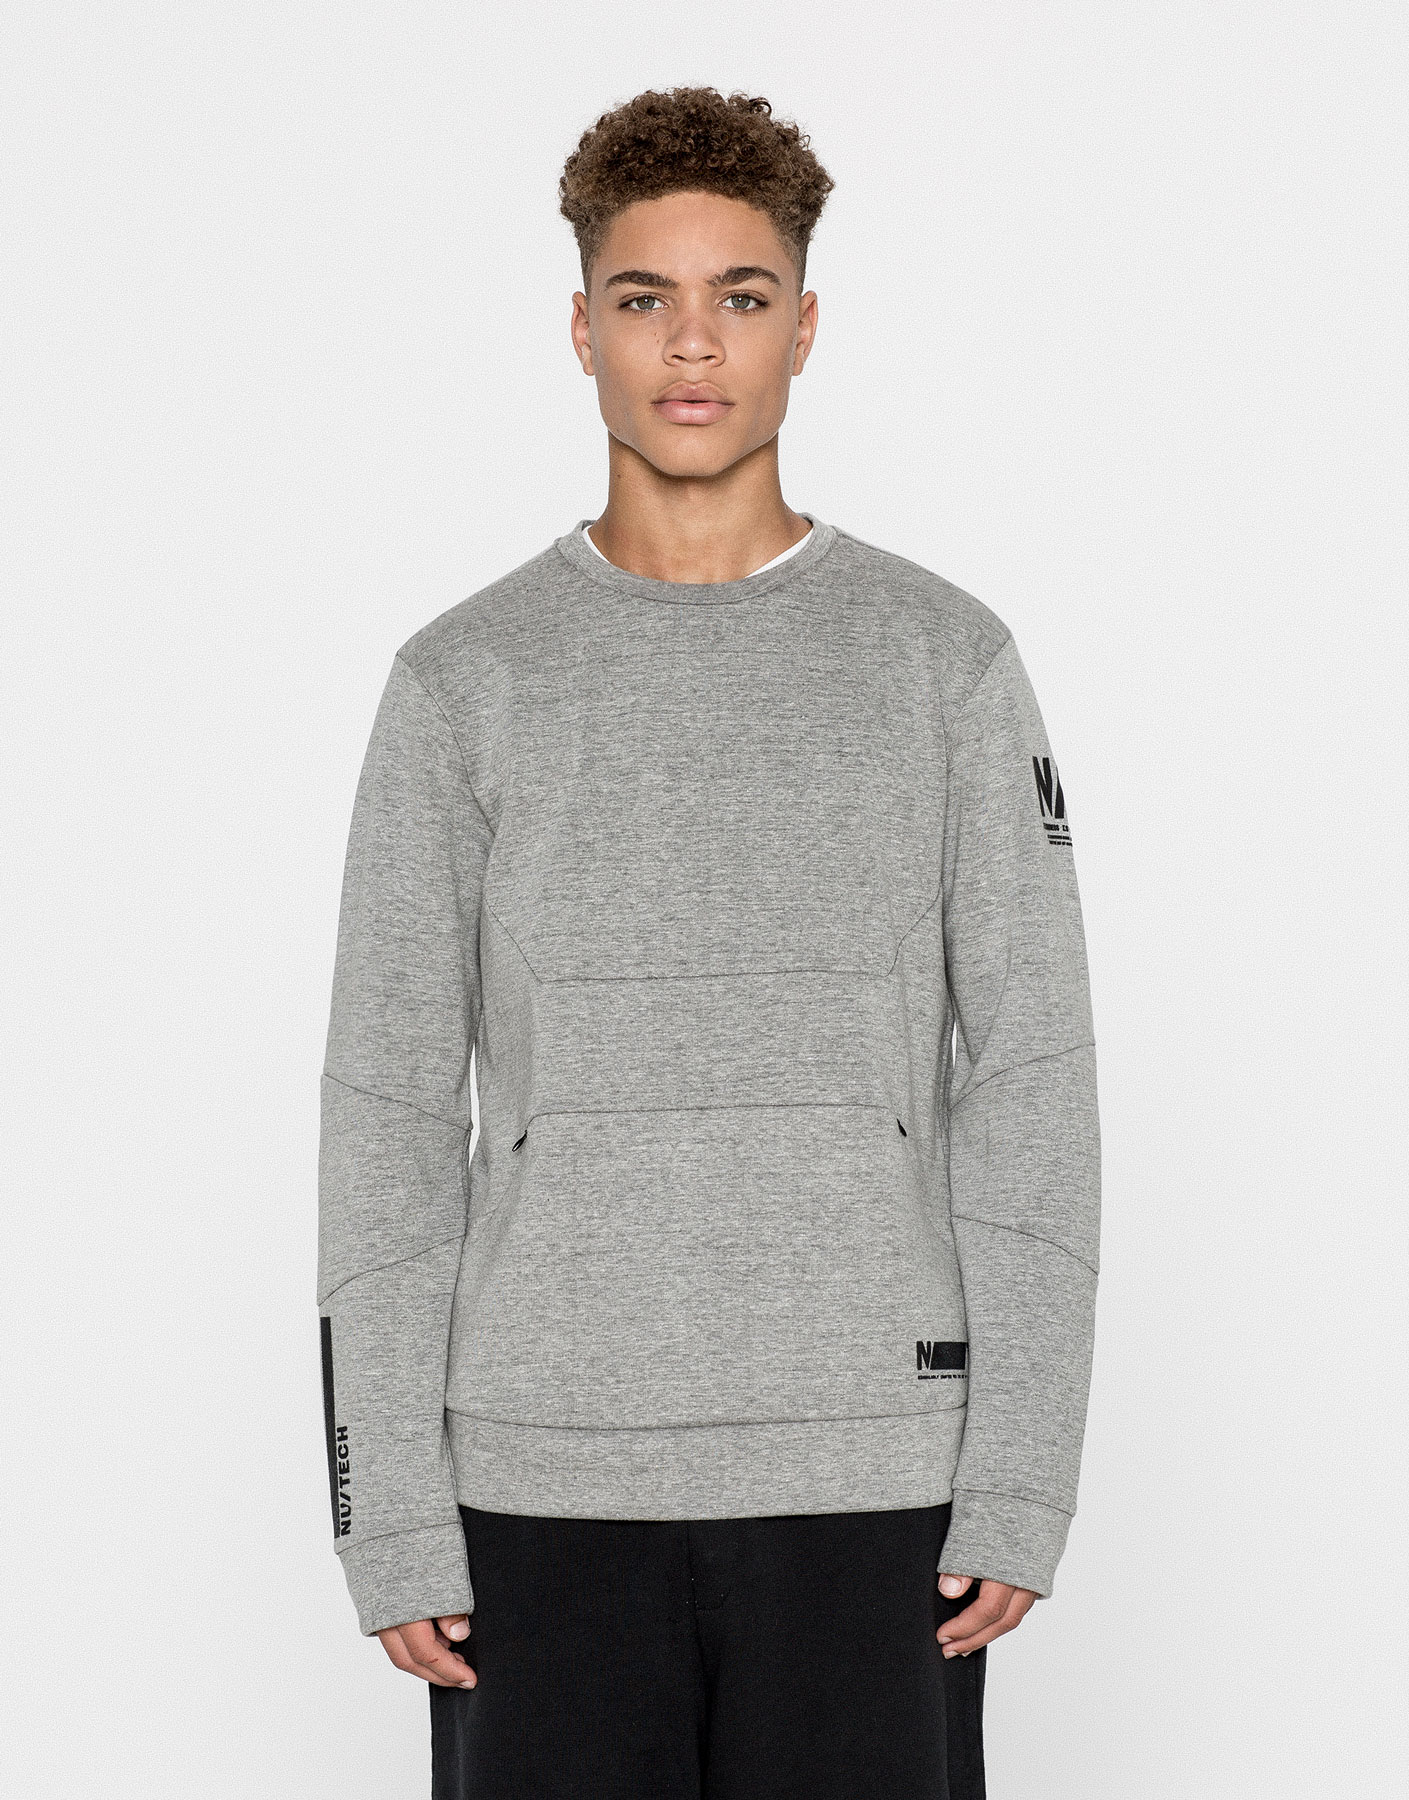 Round neck technical sweatshirt